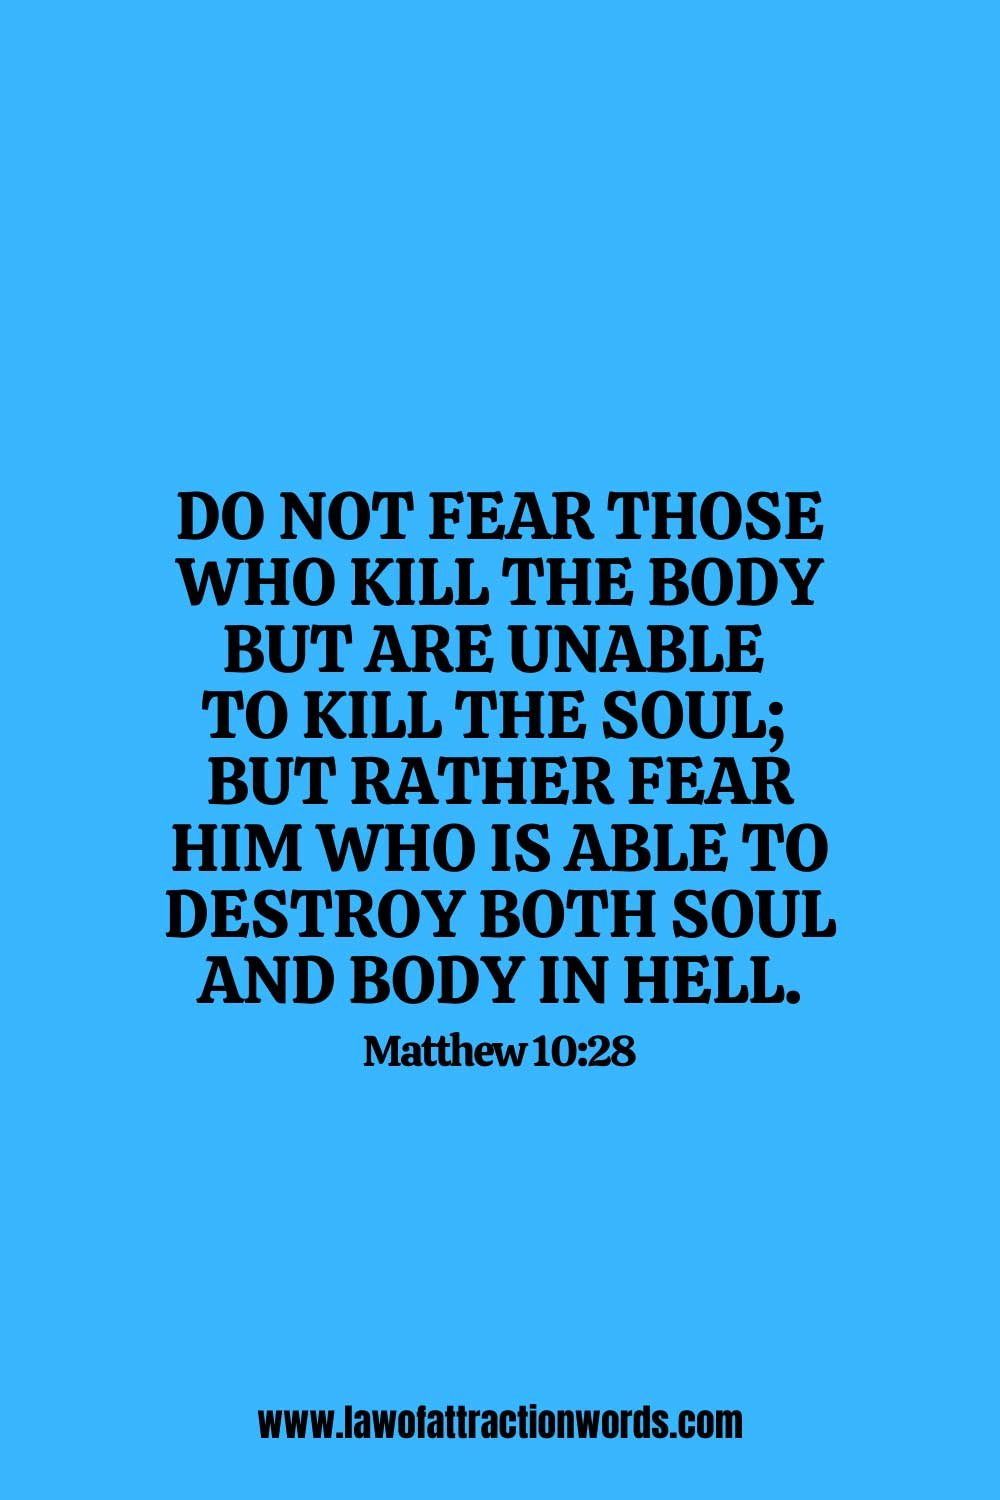 Bible Verses Spiritual Quotes About Death Of A Loved One